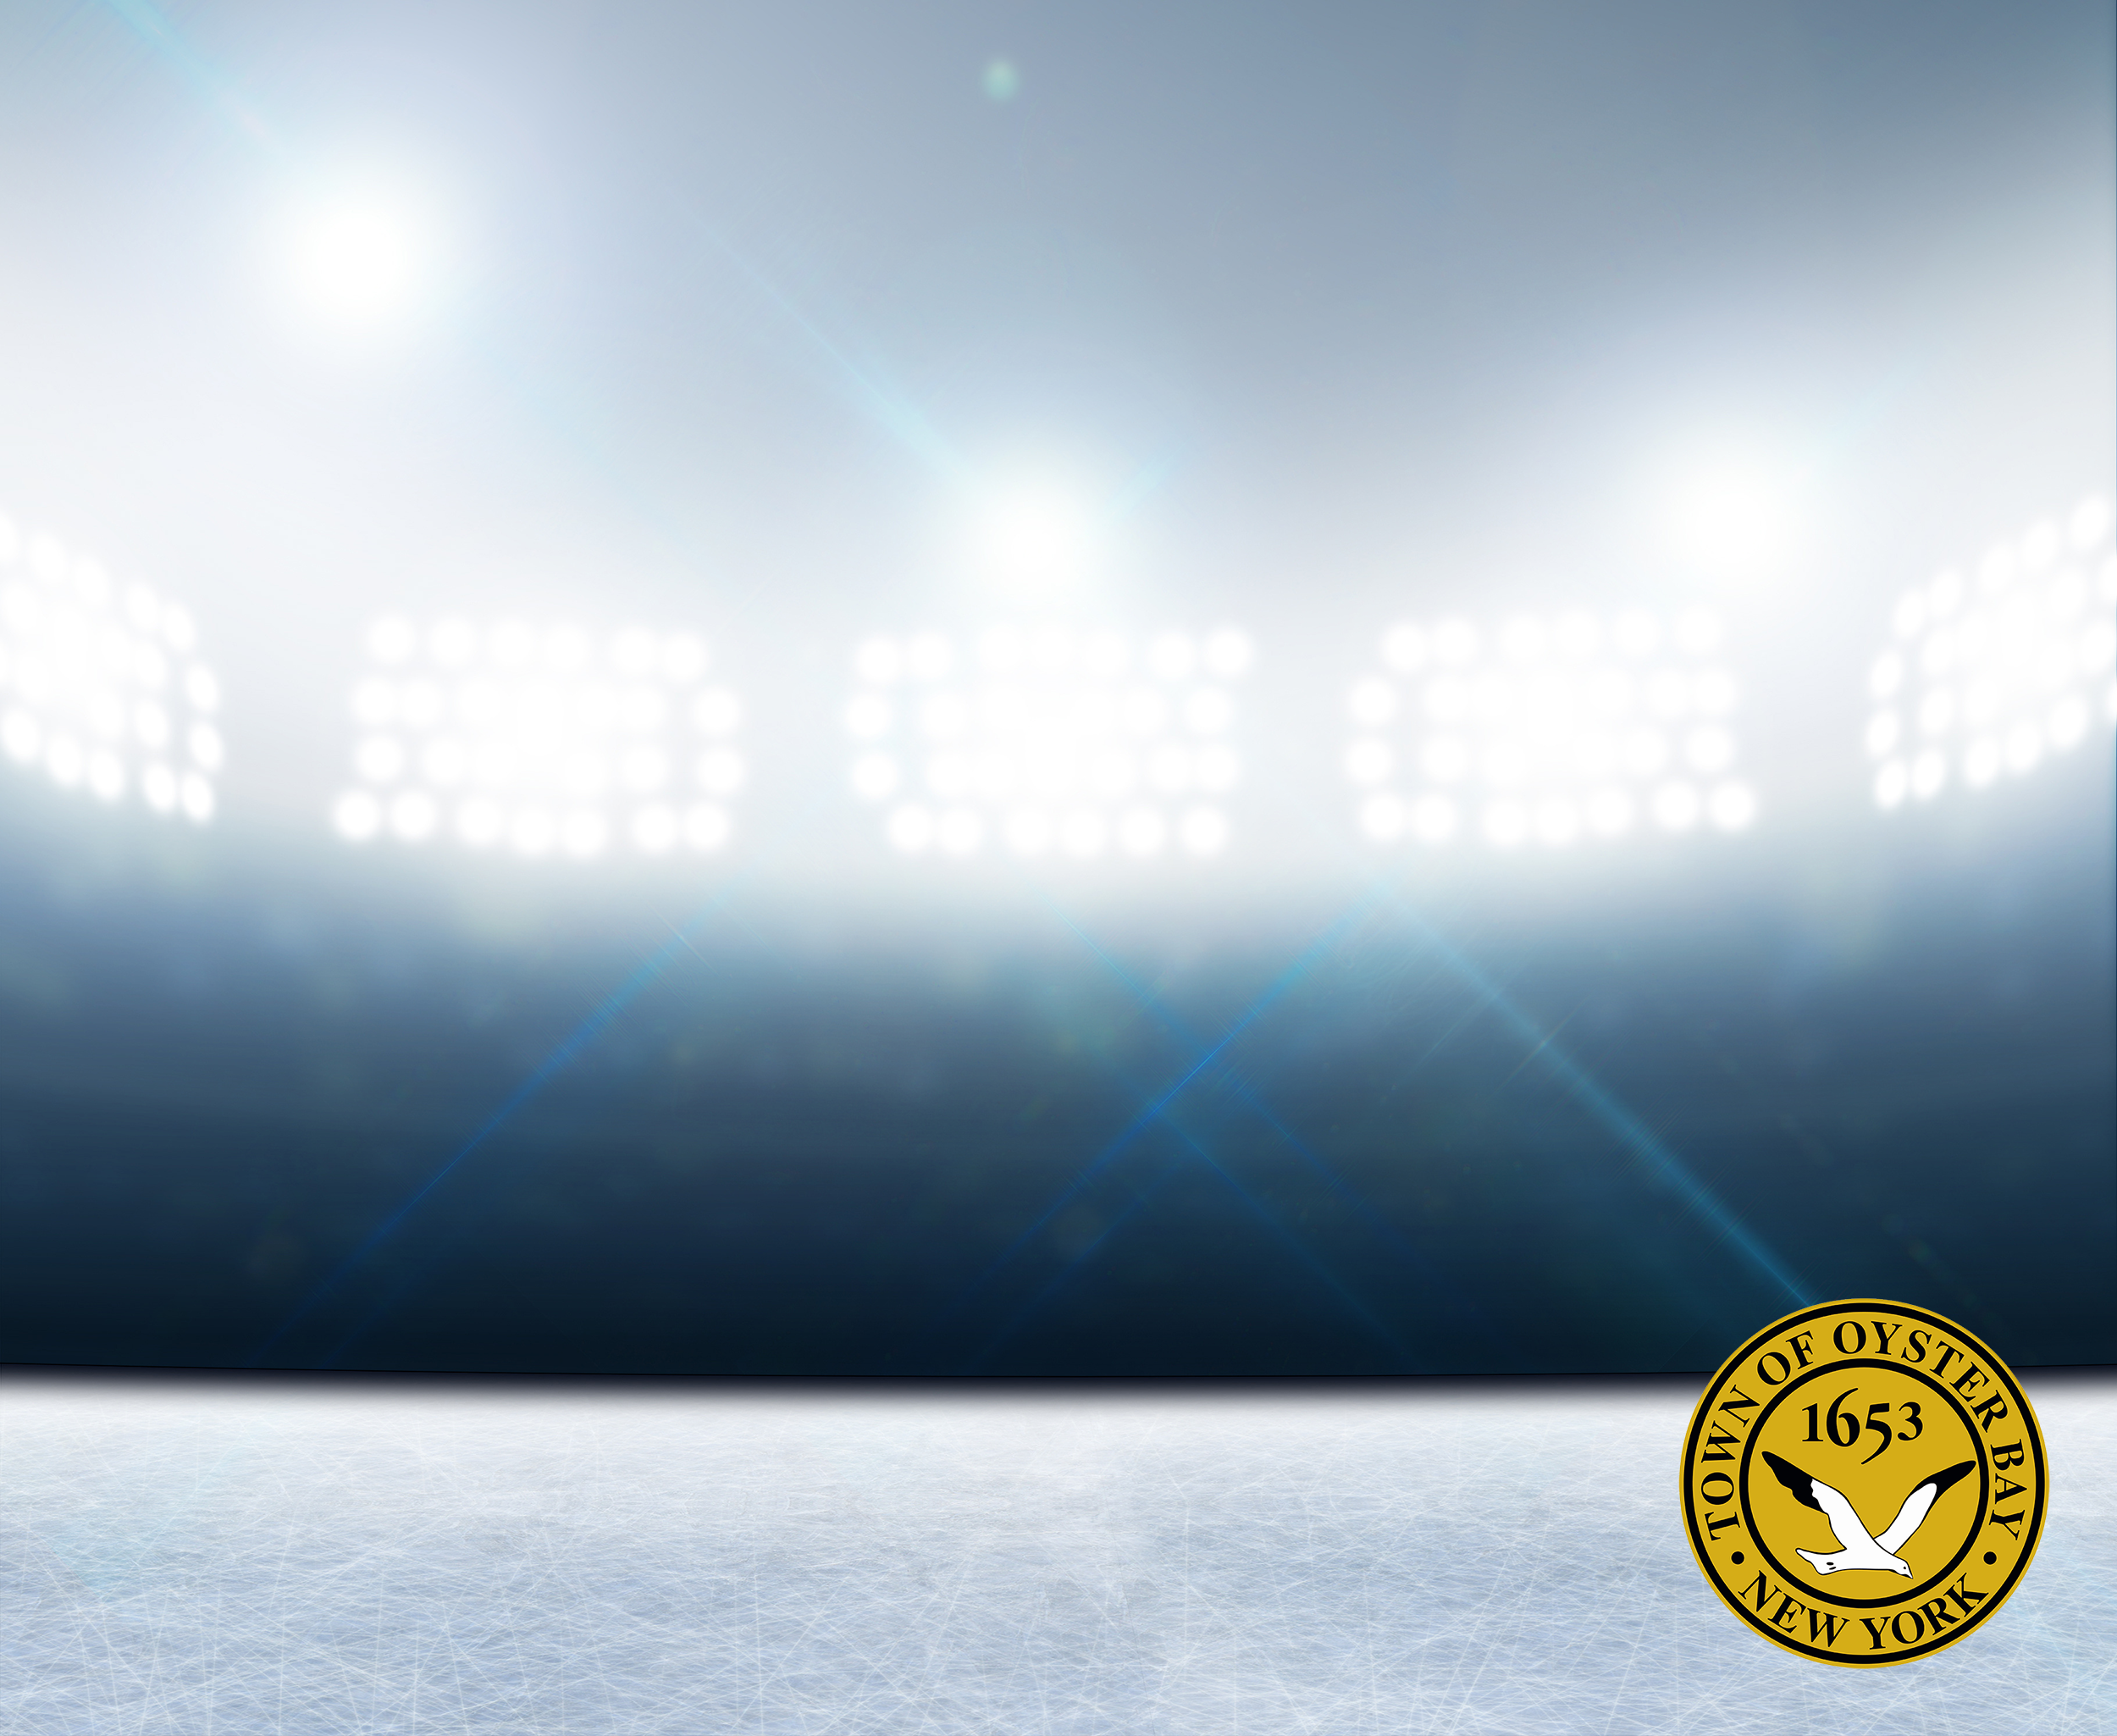 Installation of Energy Efficient Lighting and Wi-Fi Service at Town Ice Skating Center in Bethpage Now Complete